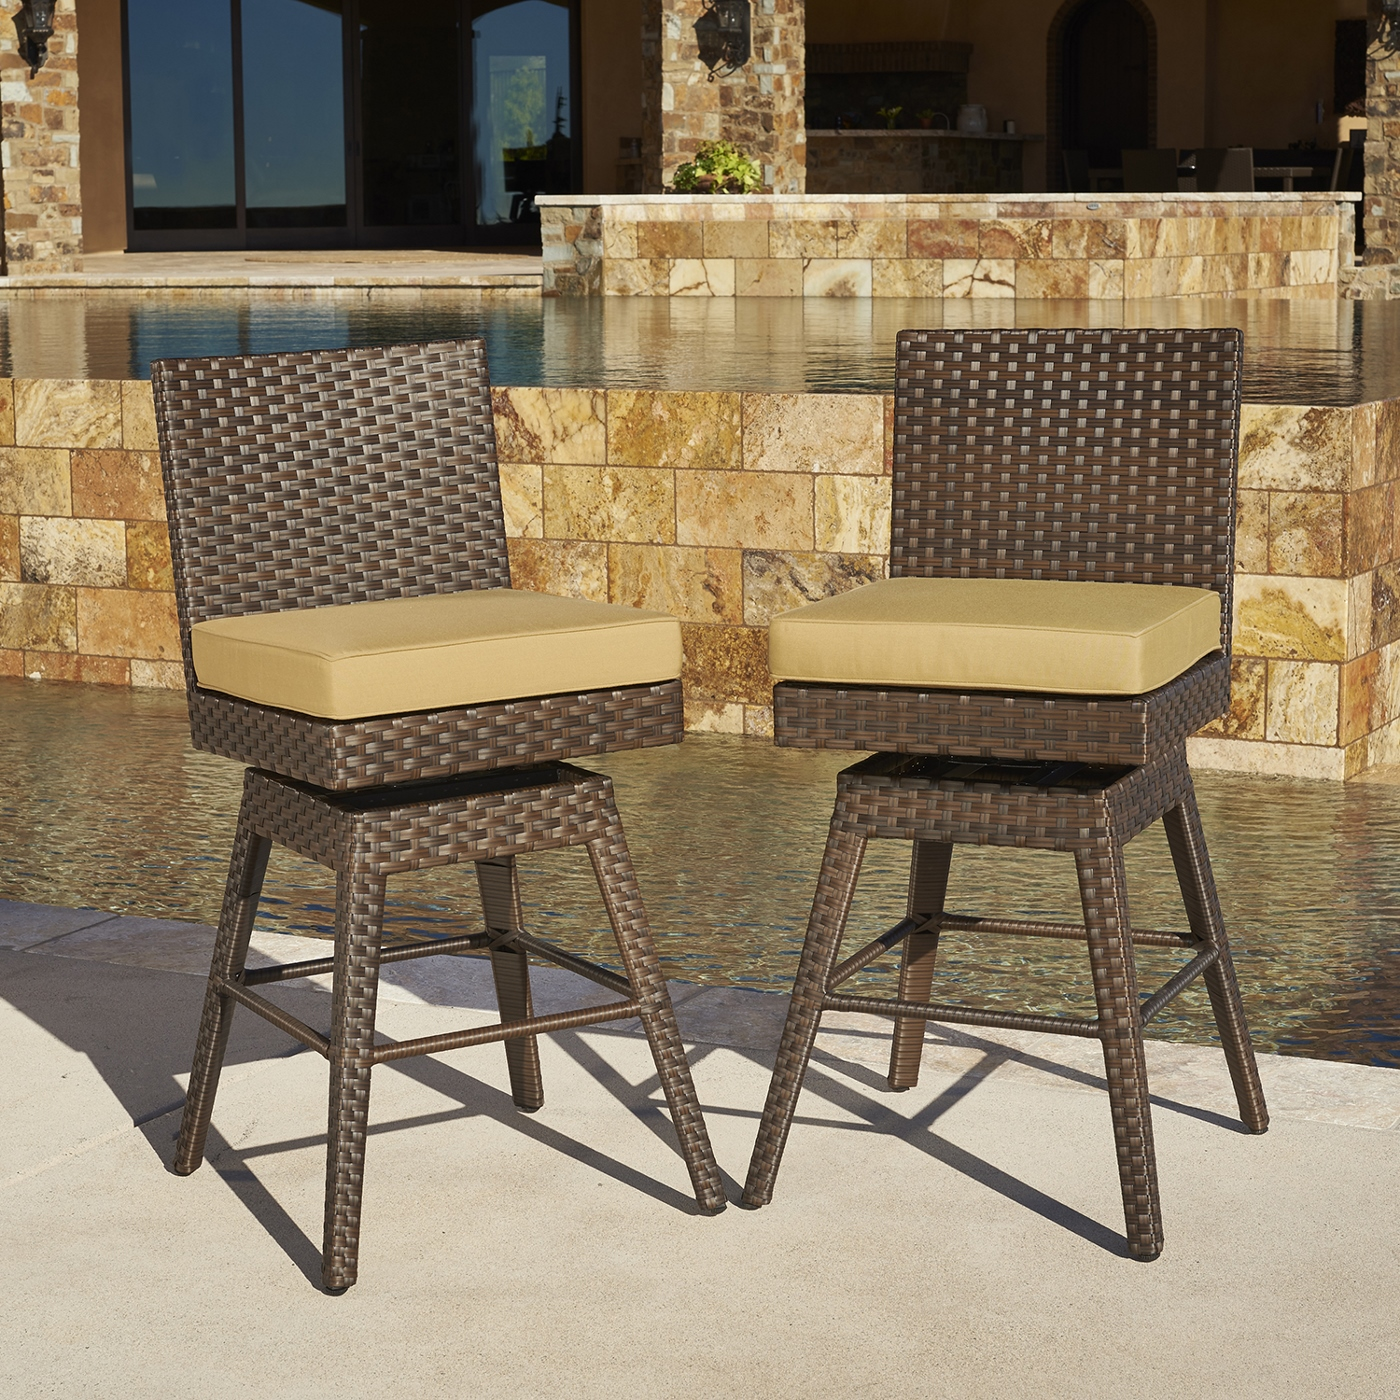 Mission madrid patio furniture madrid 5pc bar height for Furniture madrid